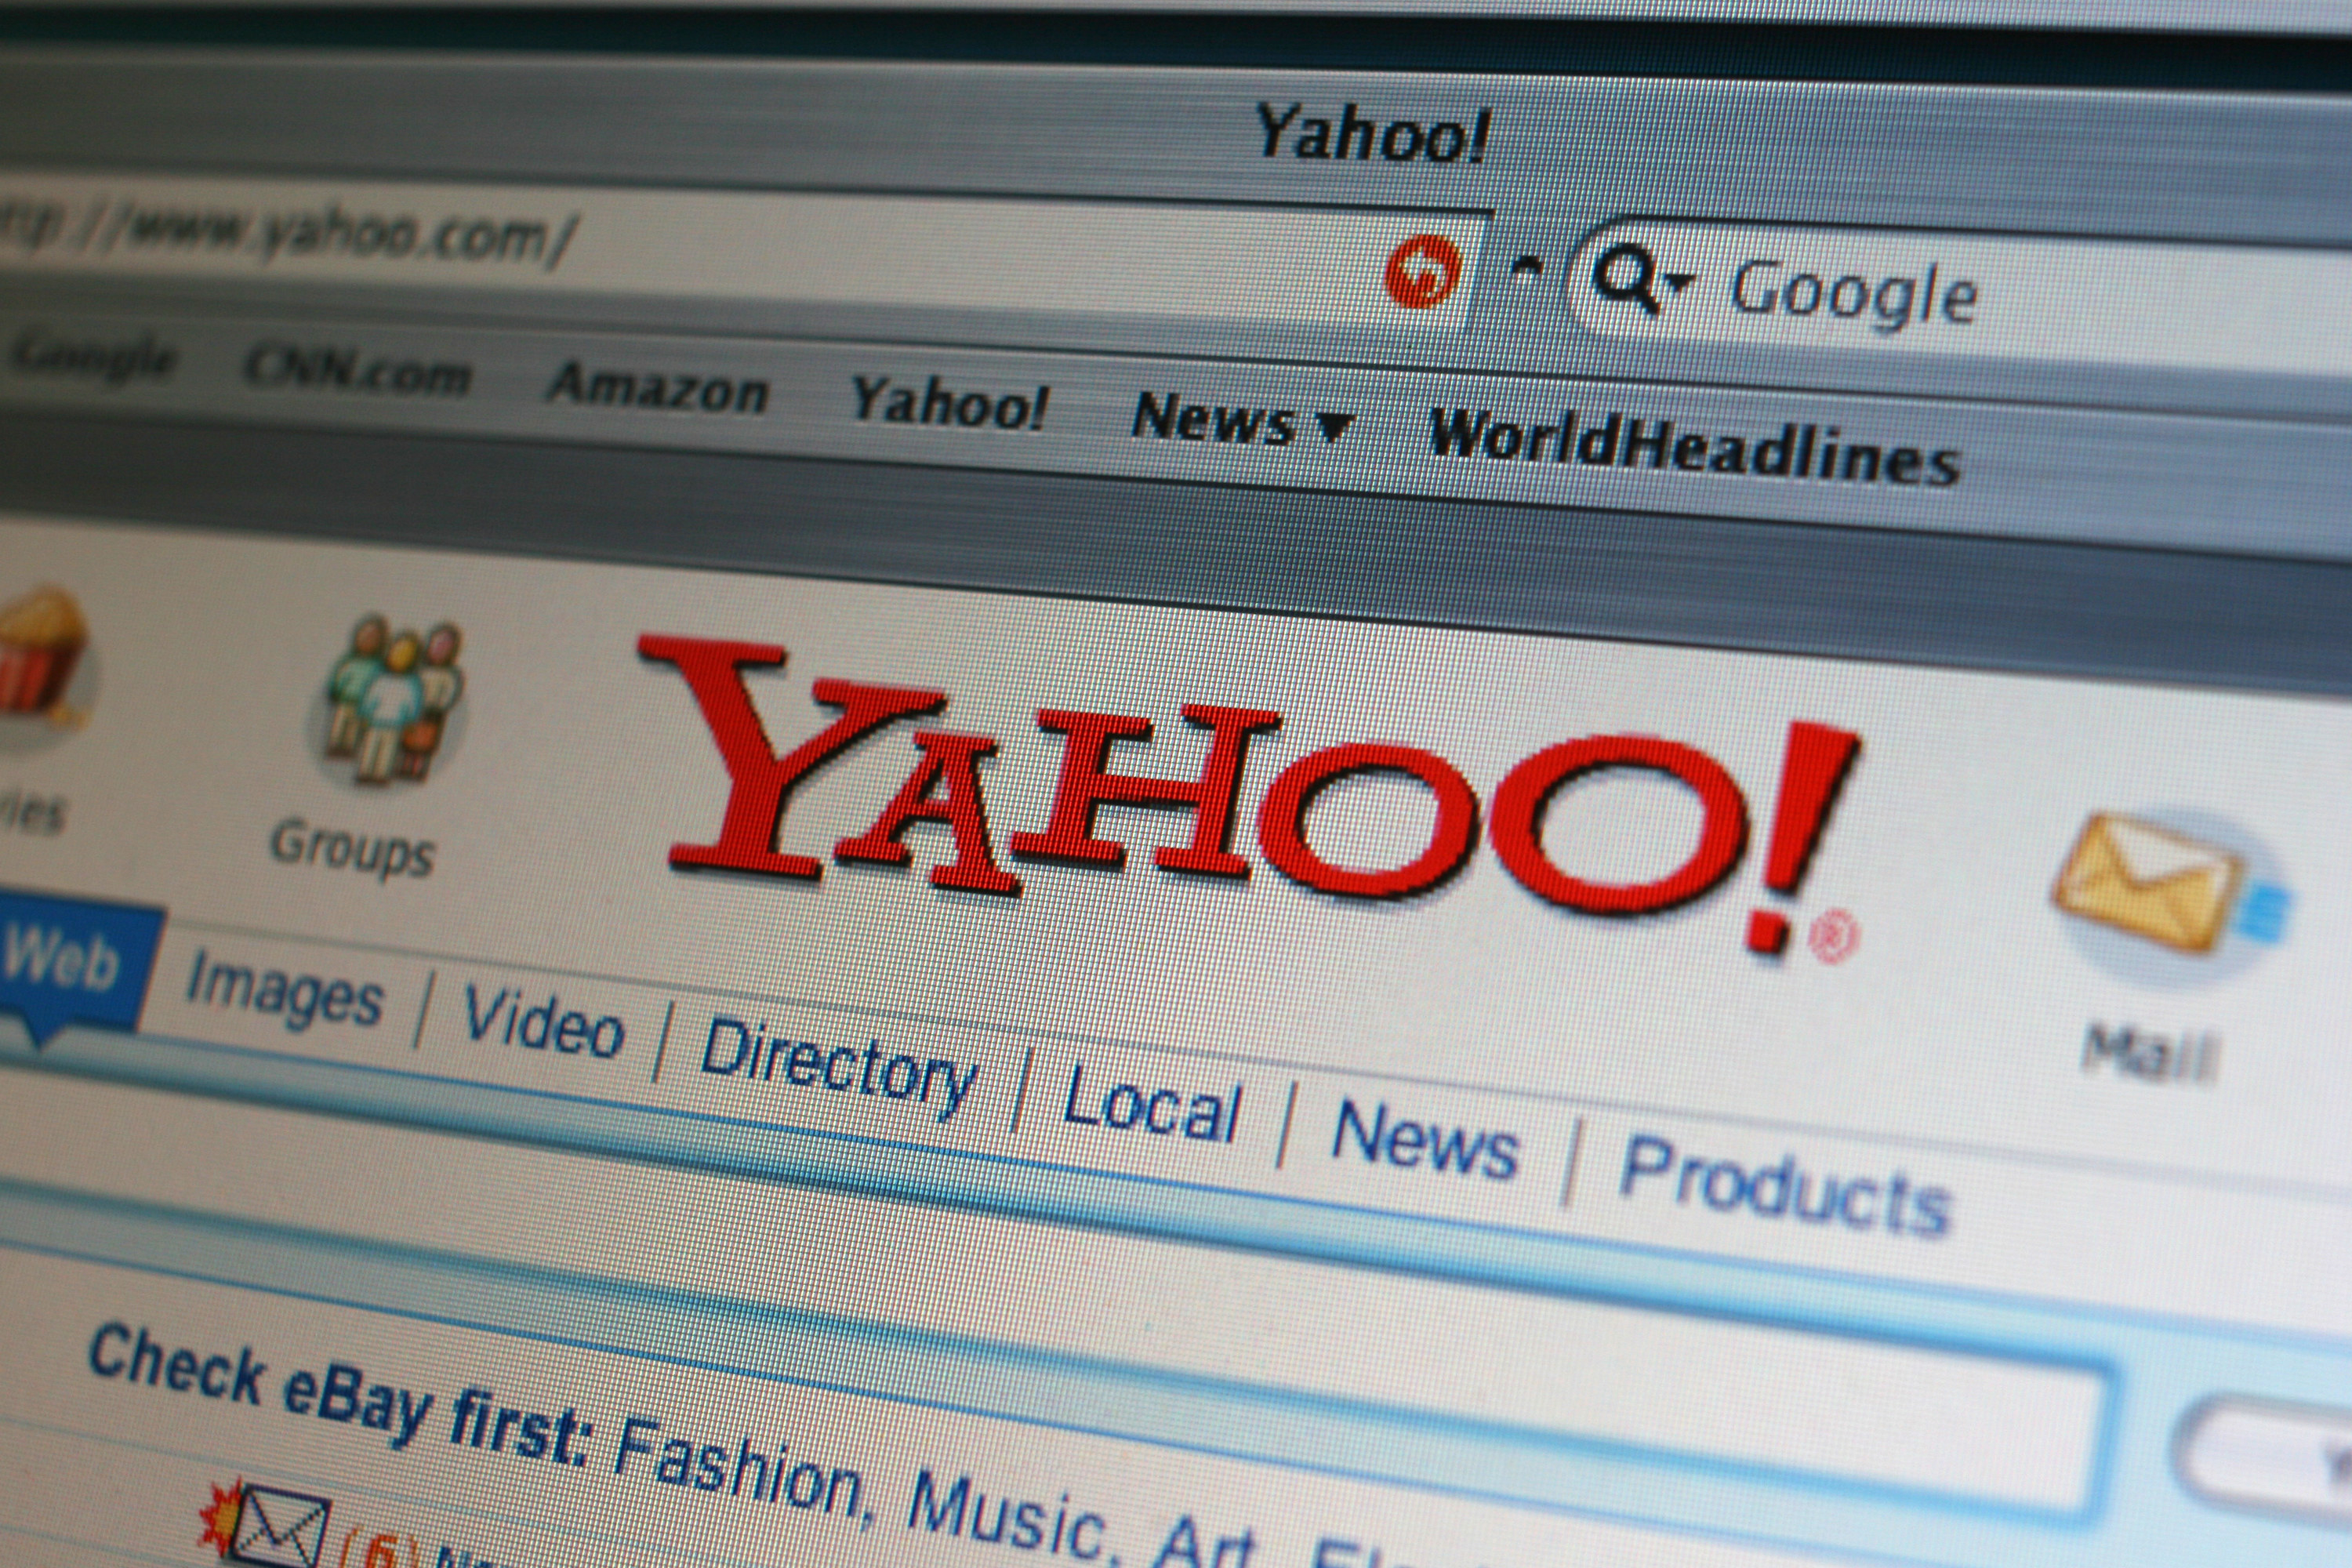 The old Yahoo header from the desktop site